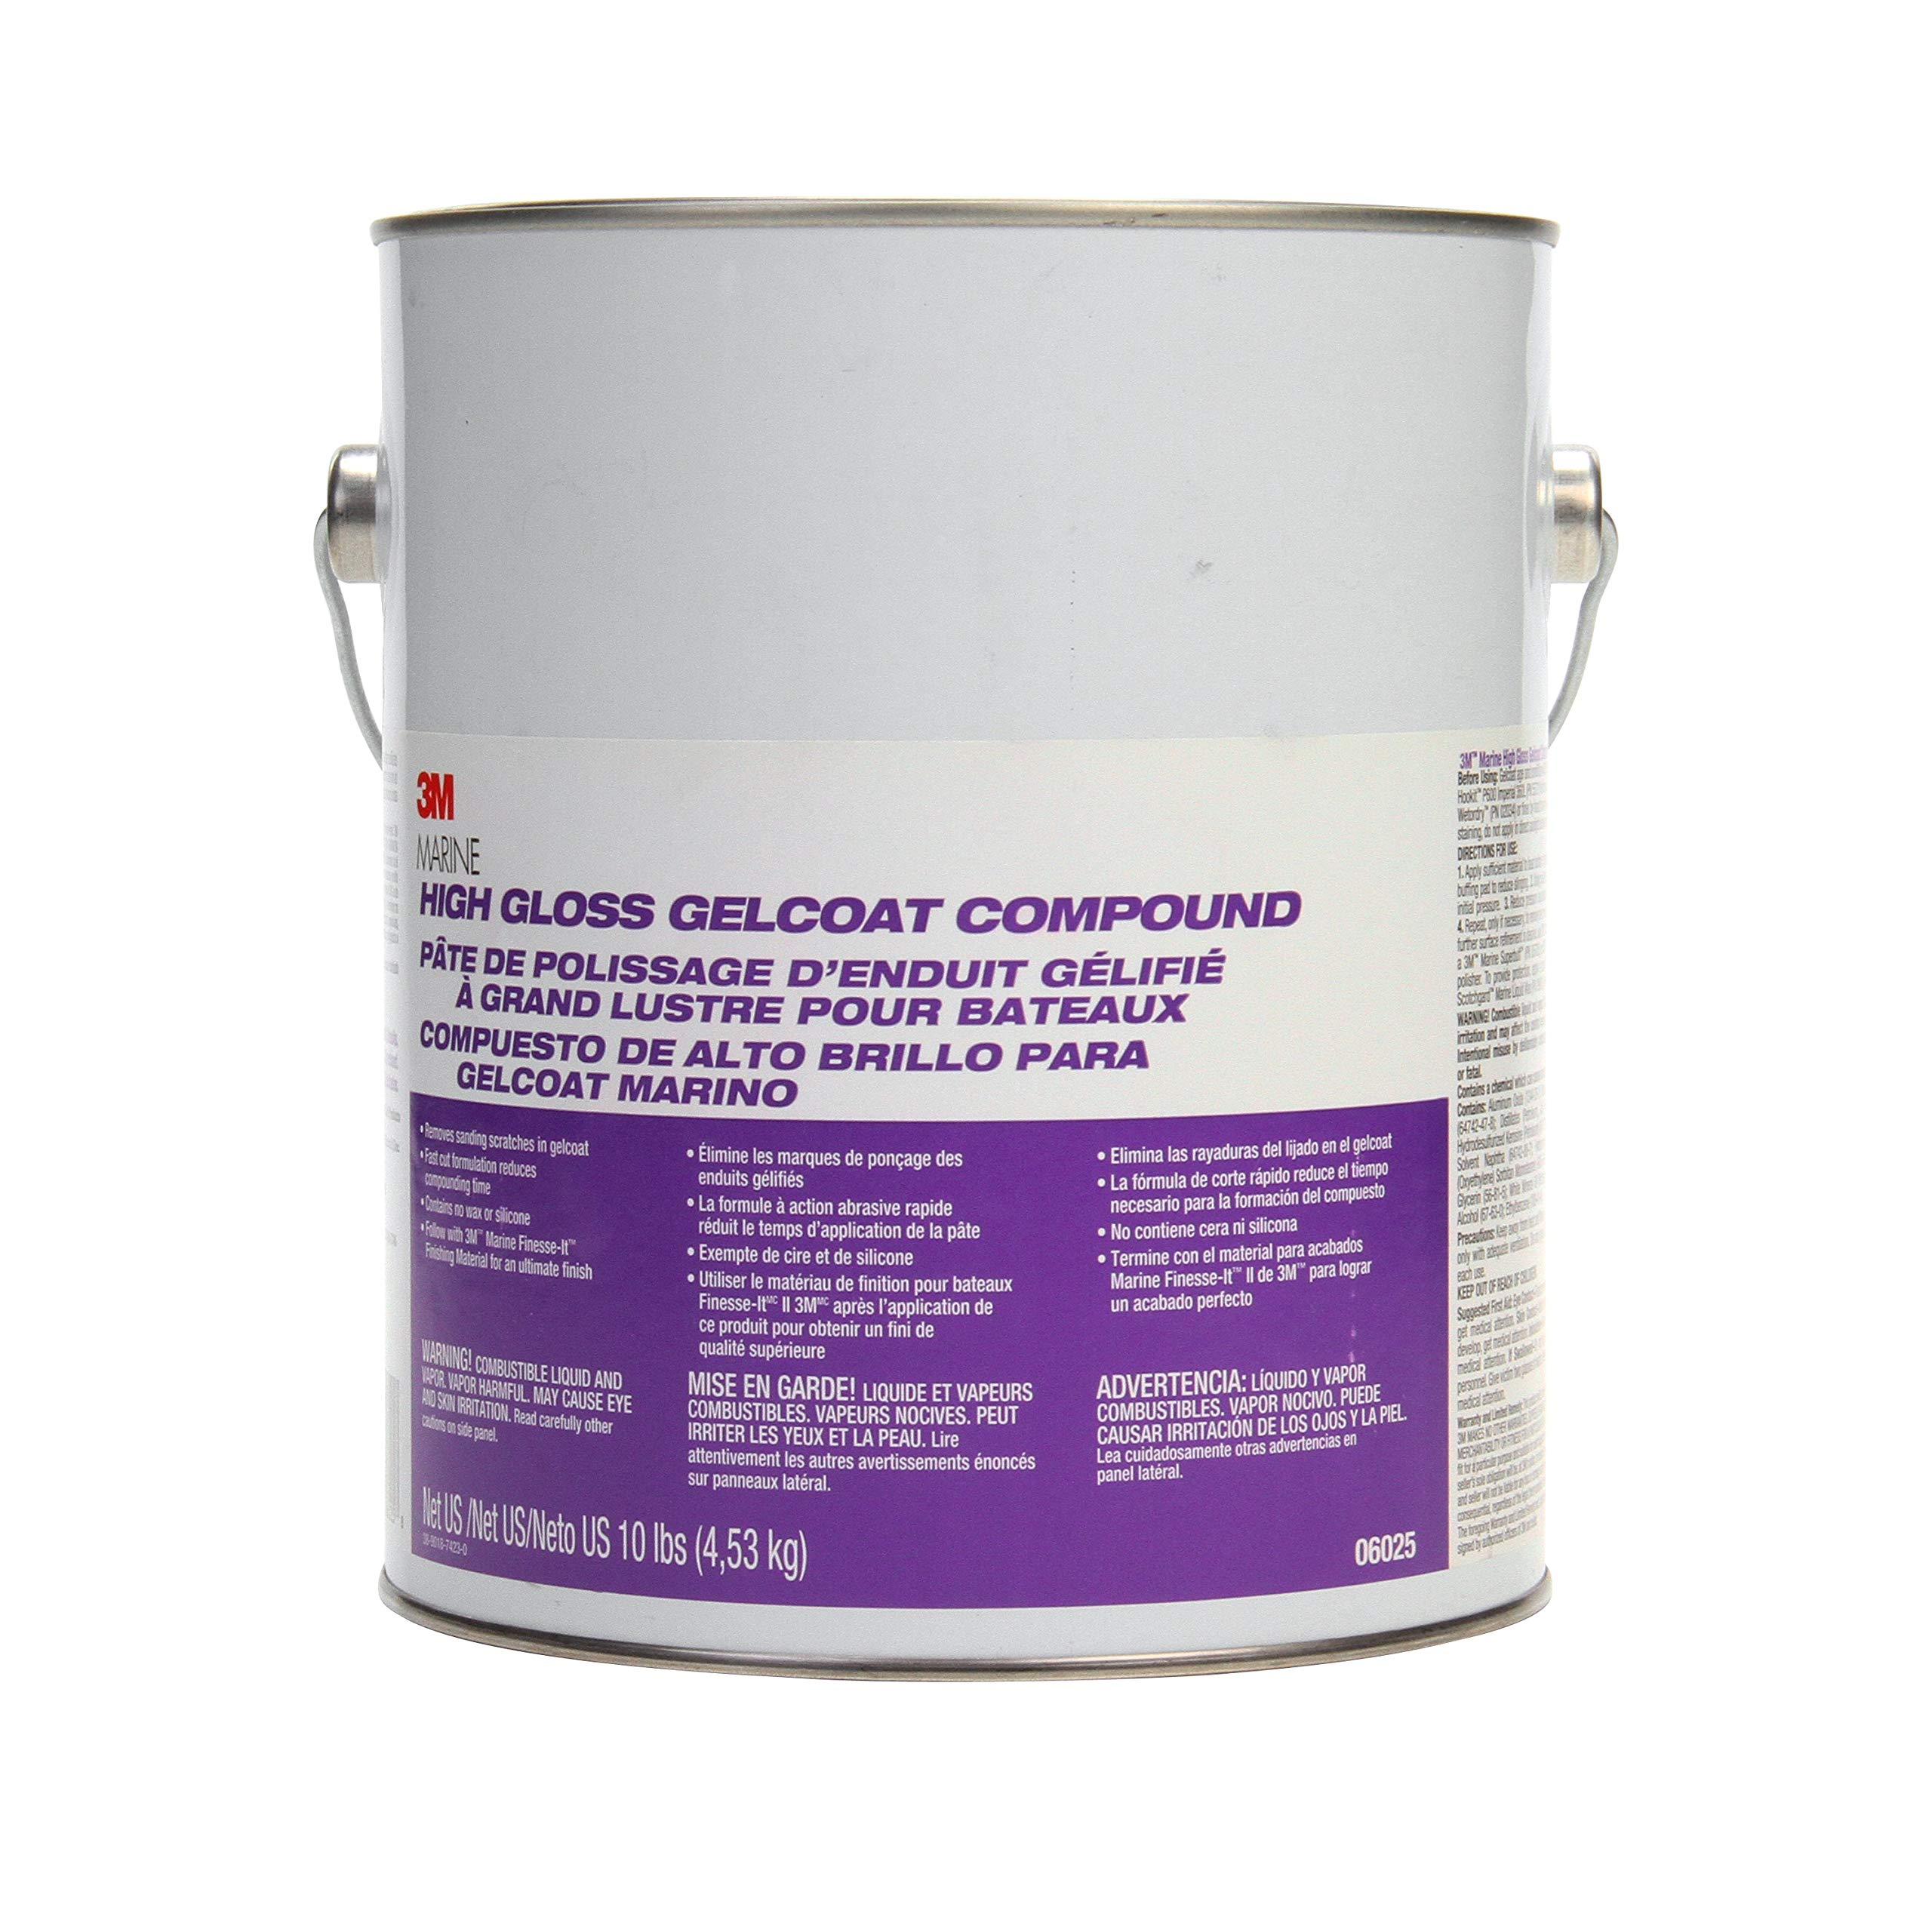 3M COMPOUND for HIGH GLOSS GELCOAT